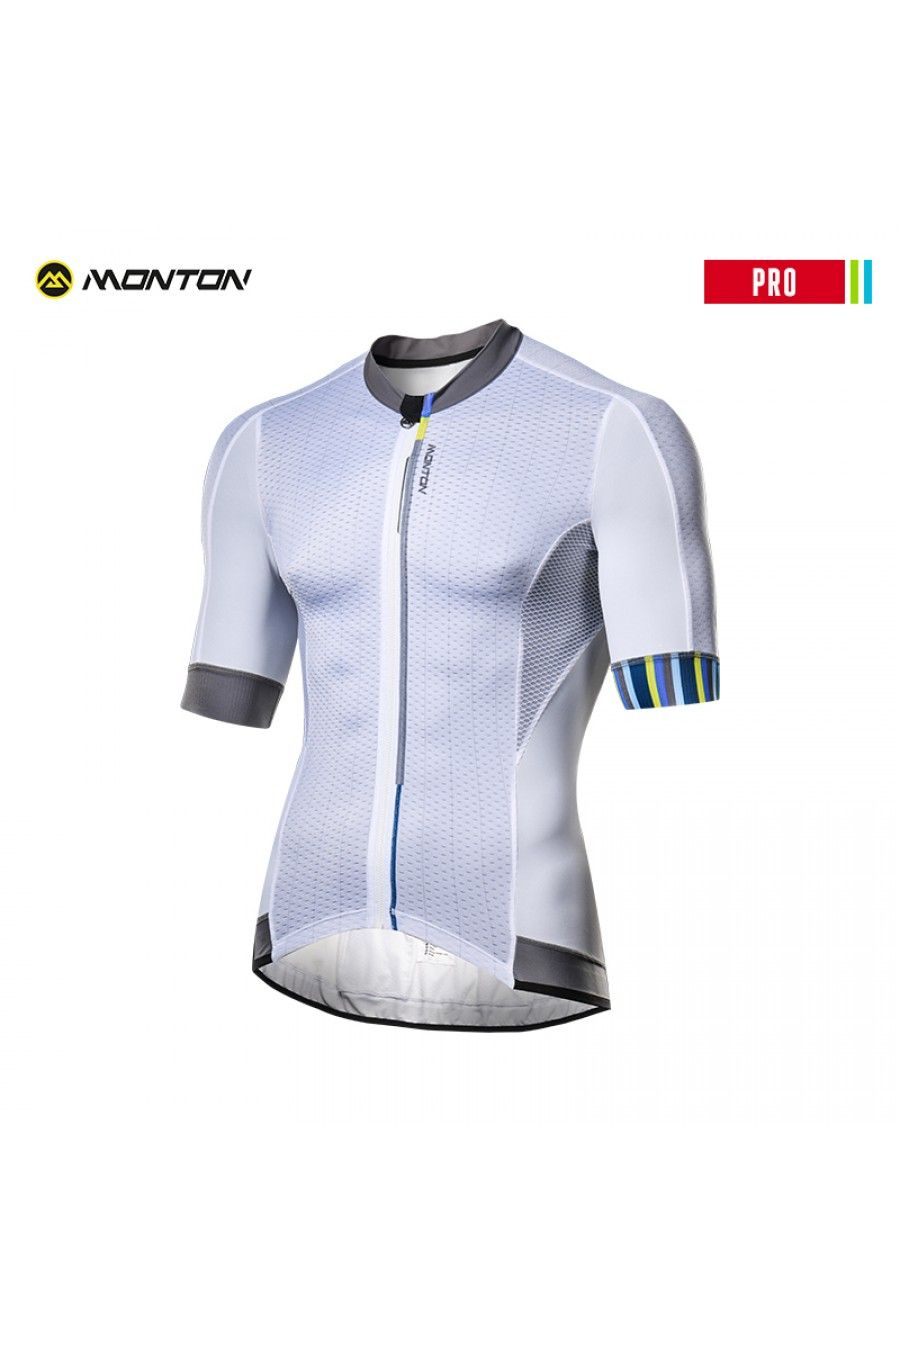 6691bafa8 Plain white cycling jersey